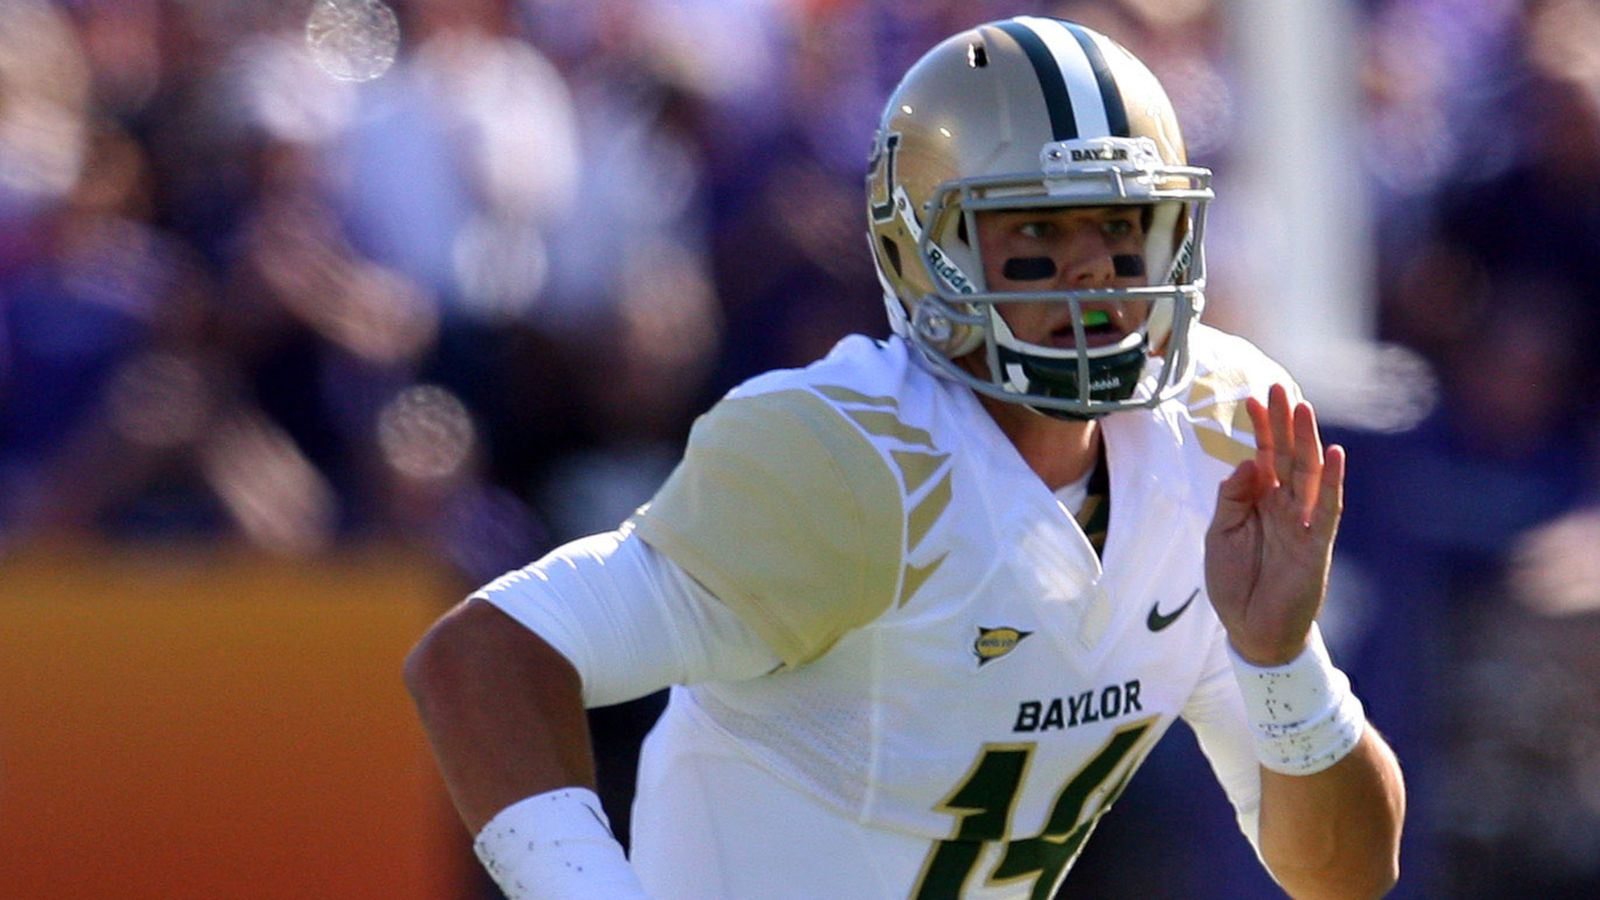 Baylor Announces Gold-White-Gold Uniform for Saturday ...